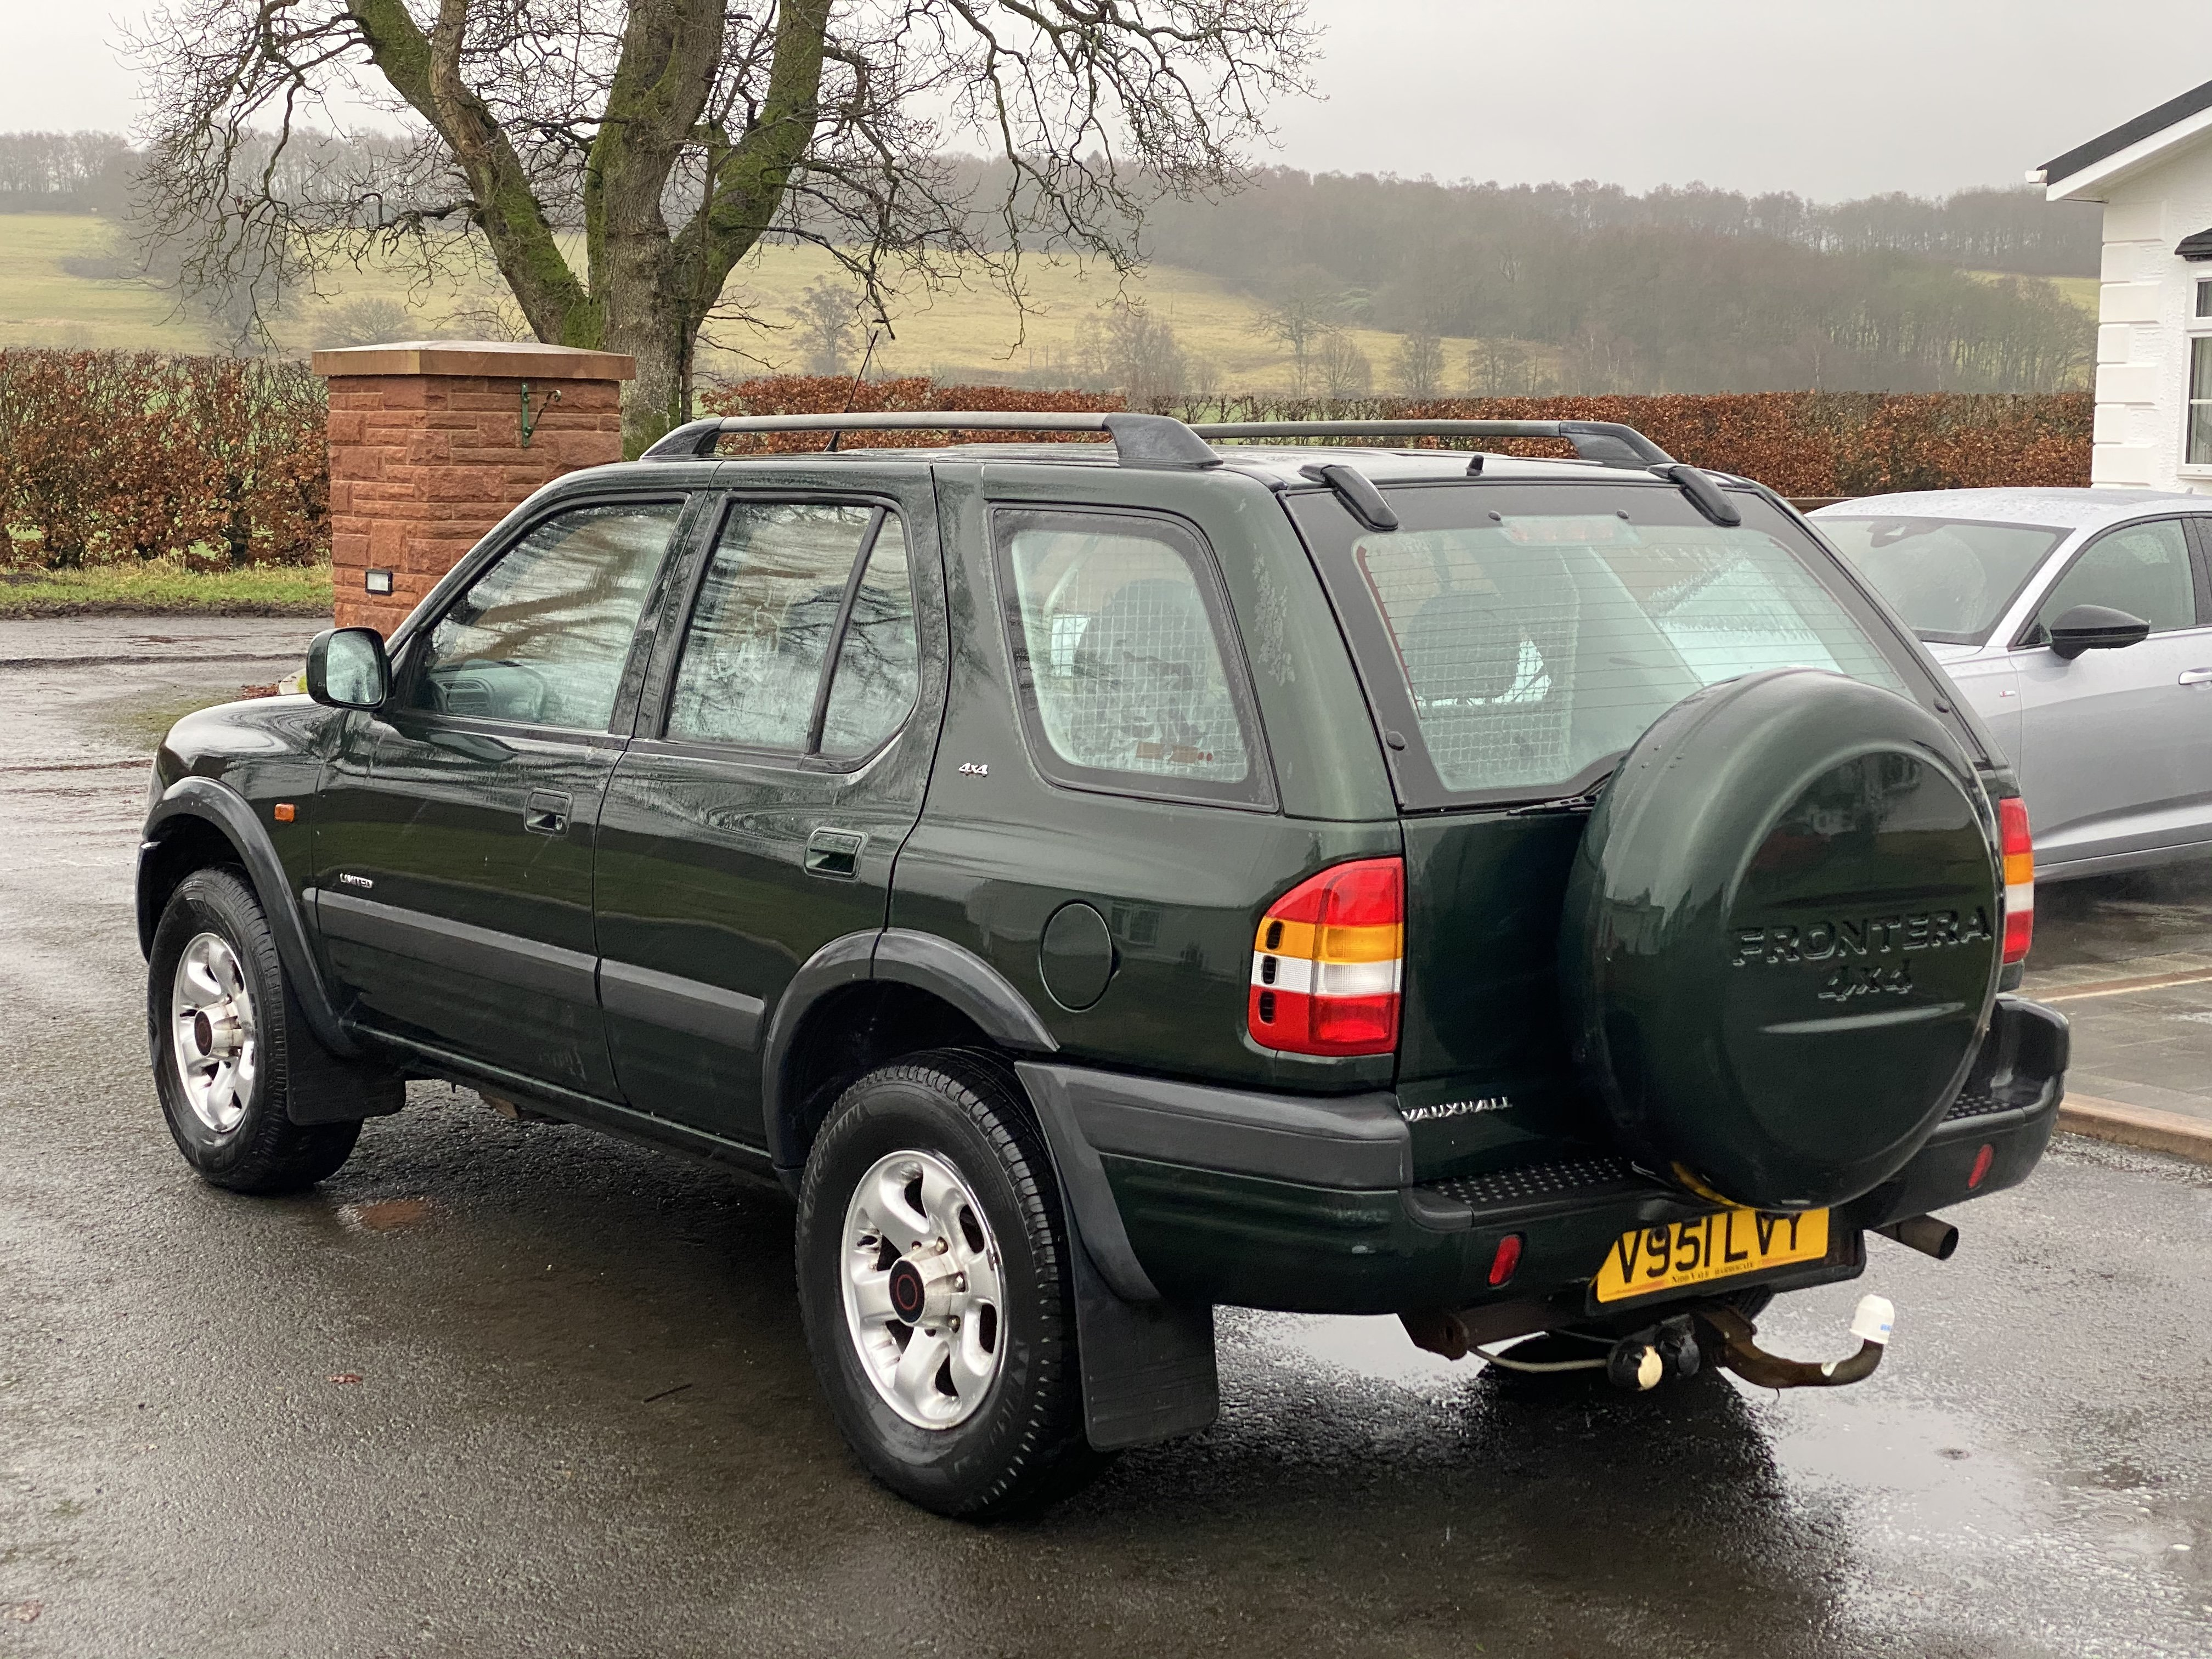 1999 Vauxhall Frontera 3.2 V6 For Sale (picture 3 of 6)